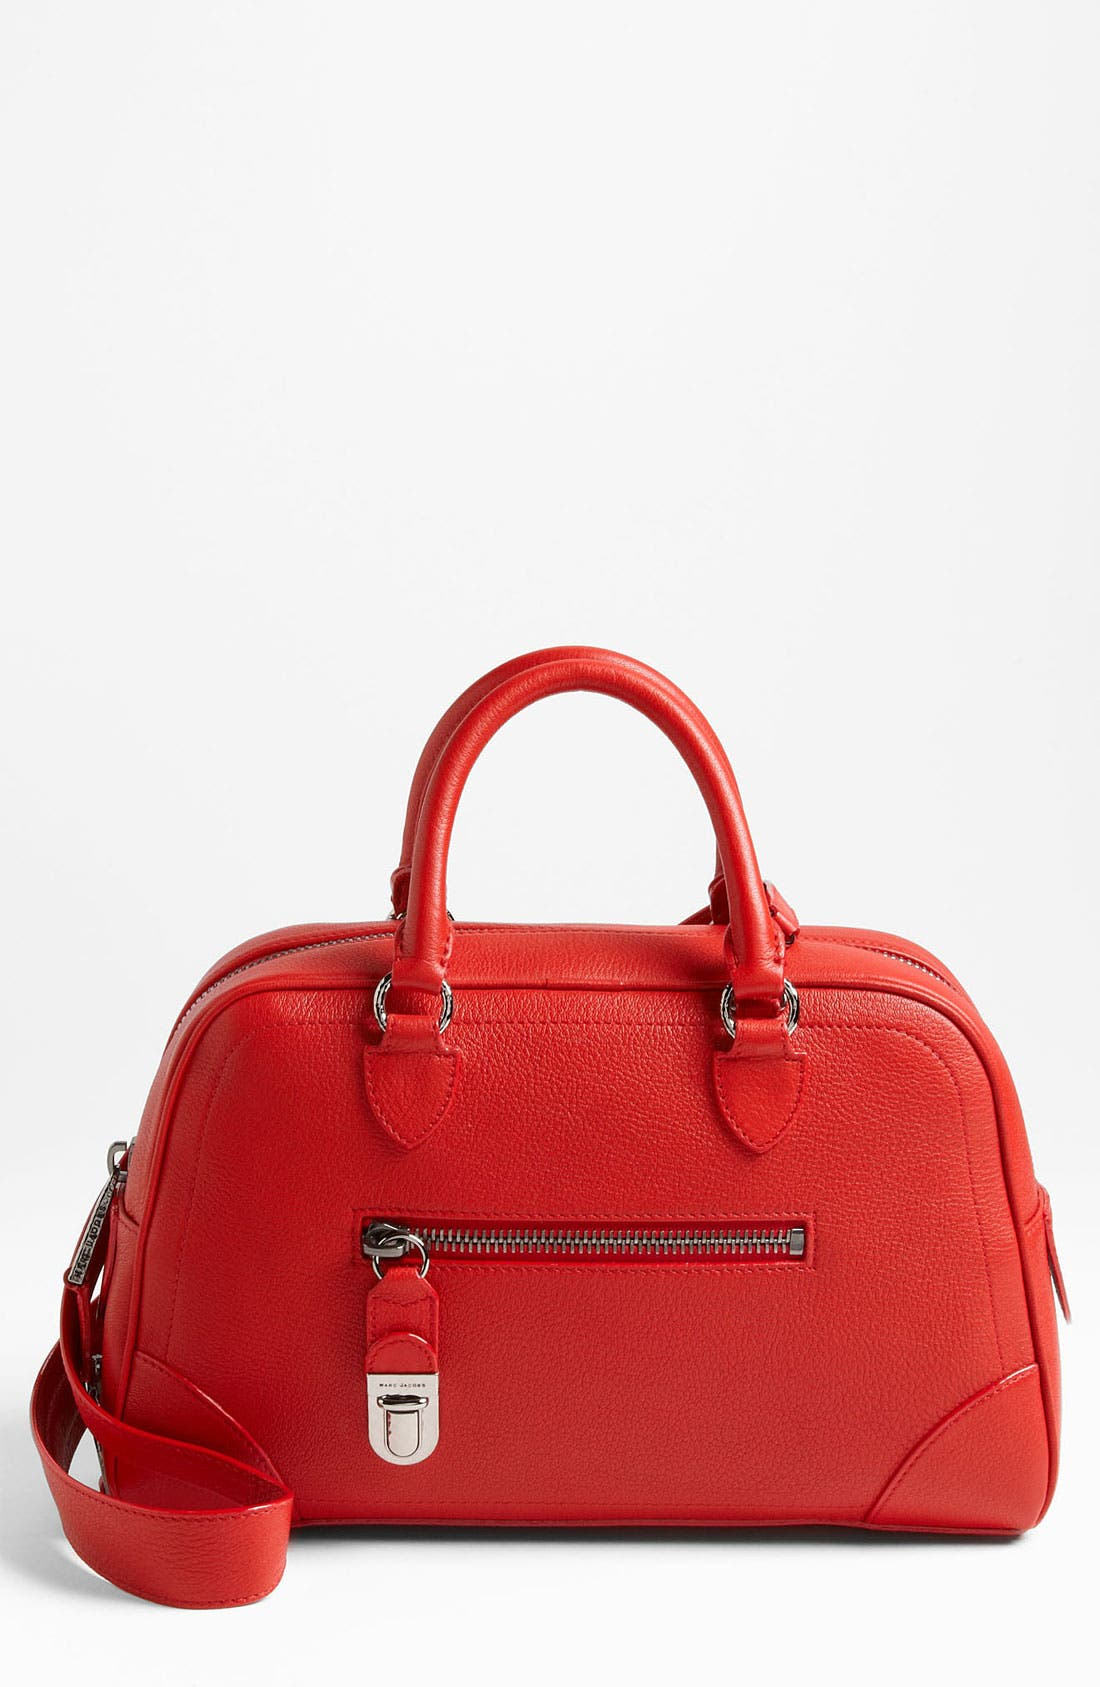 Alternate Image 1 Selected - MARC JACOBS 'Small Venetia' Leather Satchel